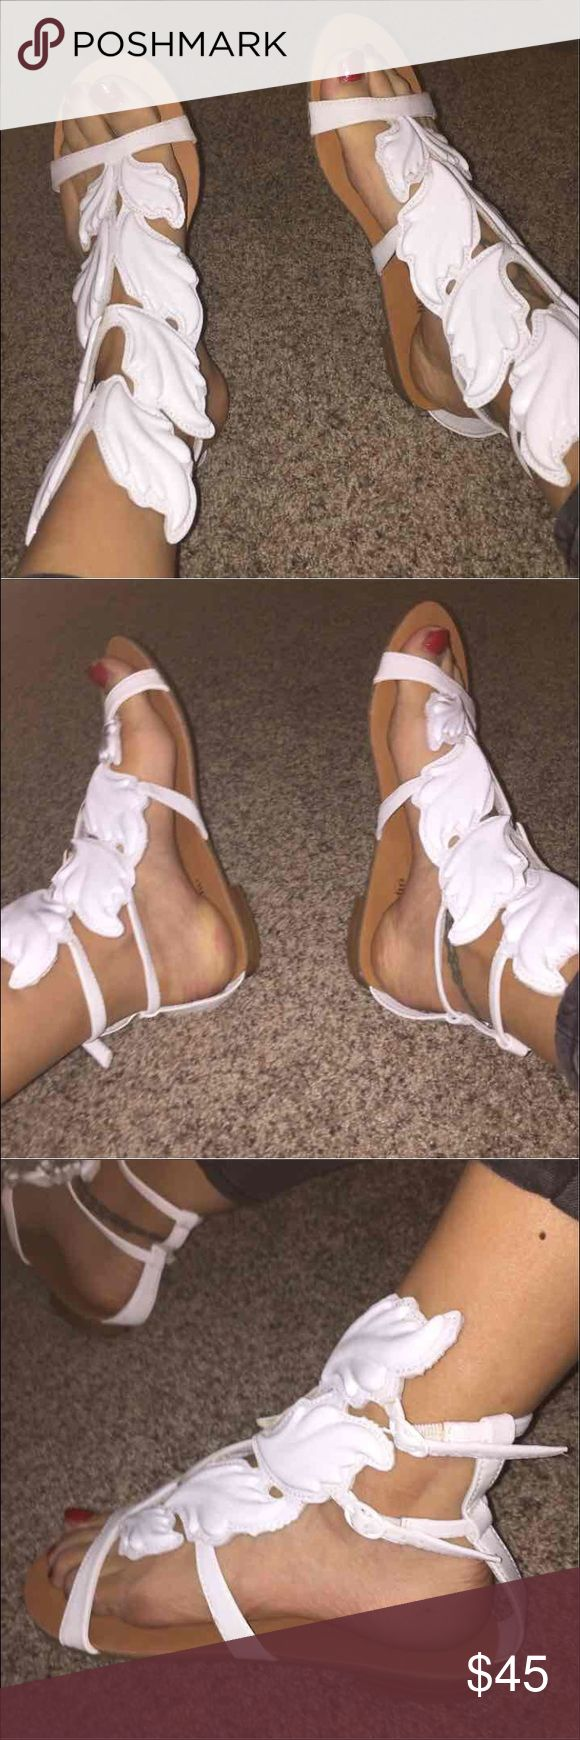 Cute white wing sandals look like guiseppe zanotti These are super cute and go with literally anything!! They are size 8.5 . The bottoms look brand new.  The shoes have no major signs or wear either . They look like the shoes Giuseppe zanotti and Kanye west released a few years ago. You will love them !! They do go up your ankle just a tad bit.  Brand is zigi soho Shoes Sandals